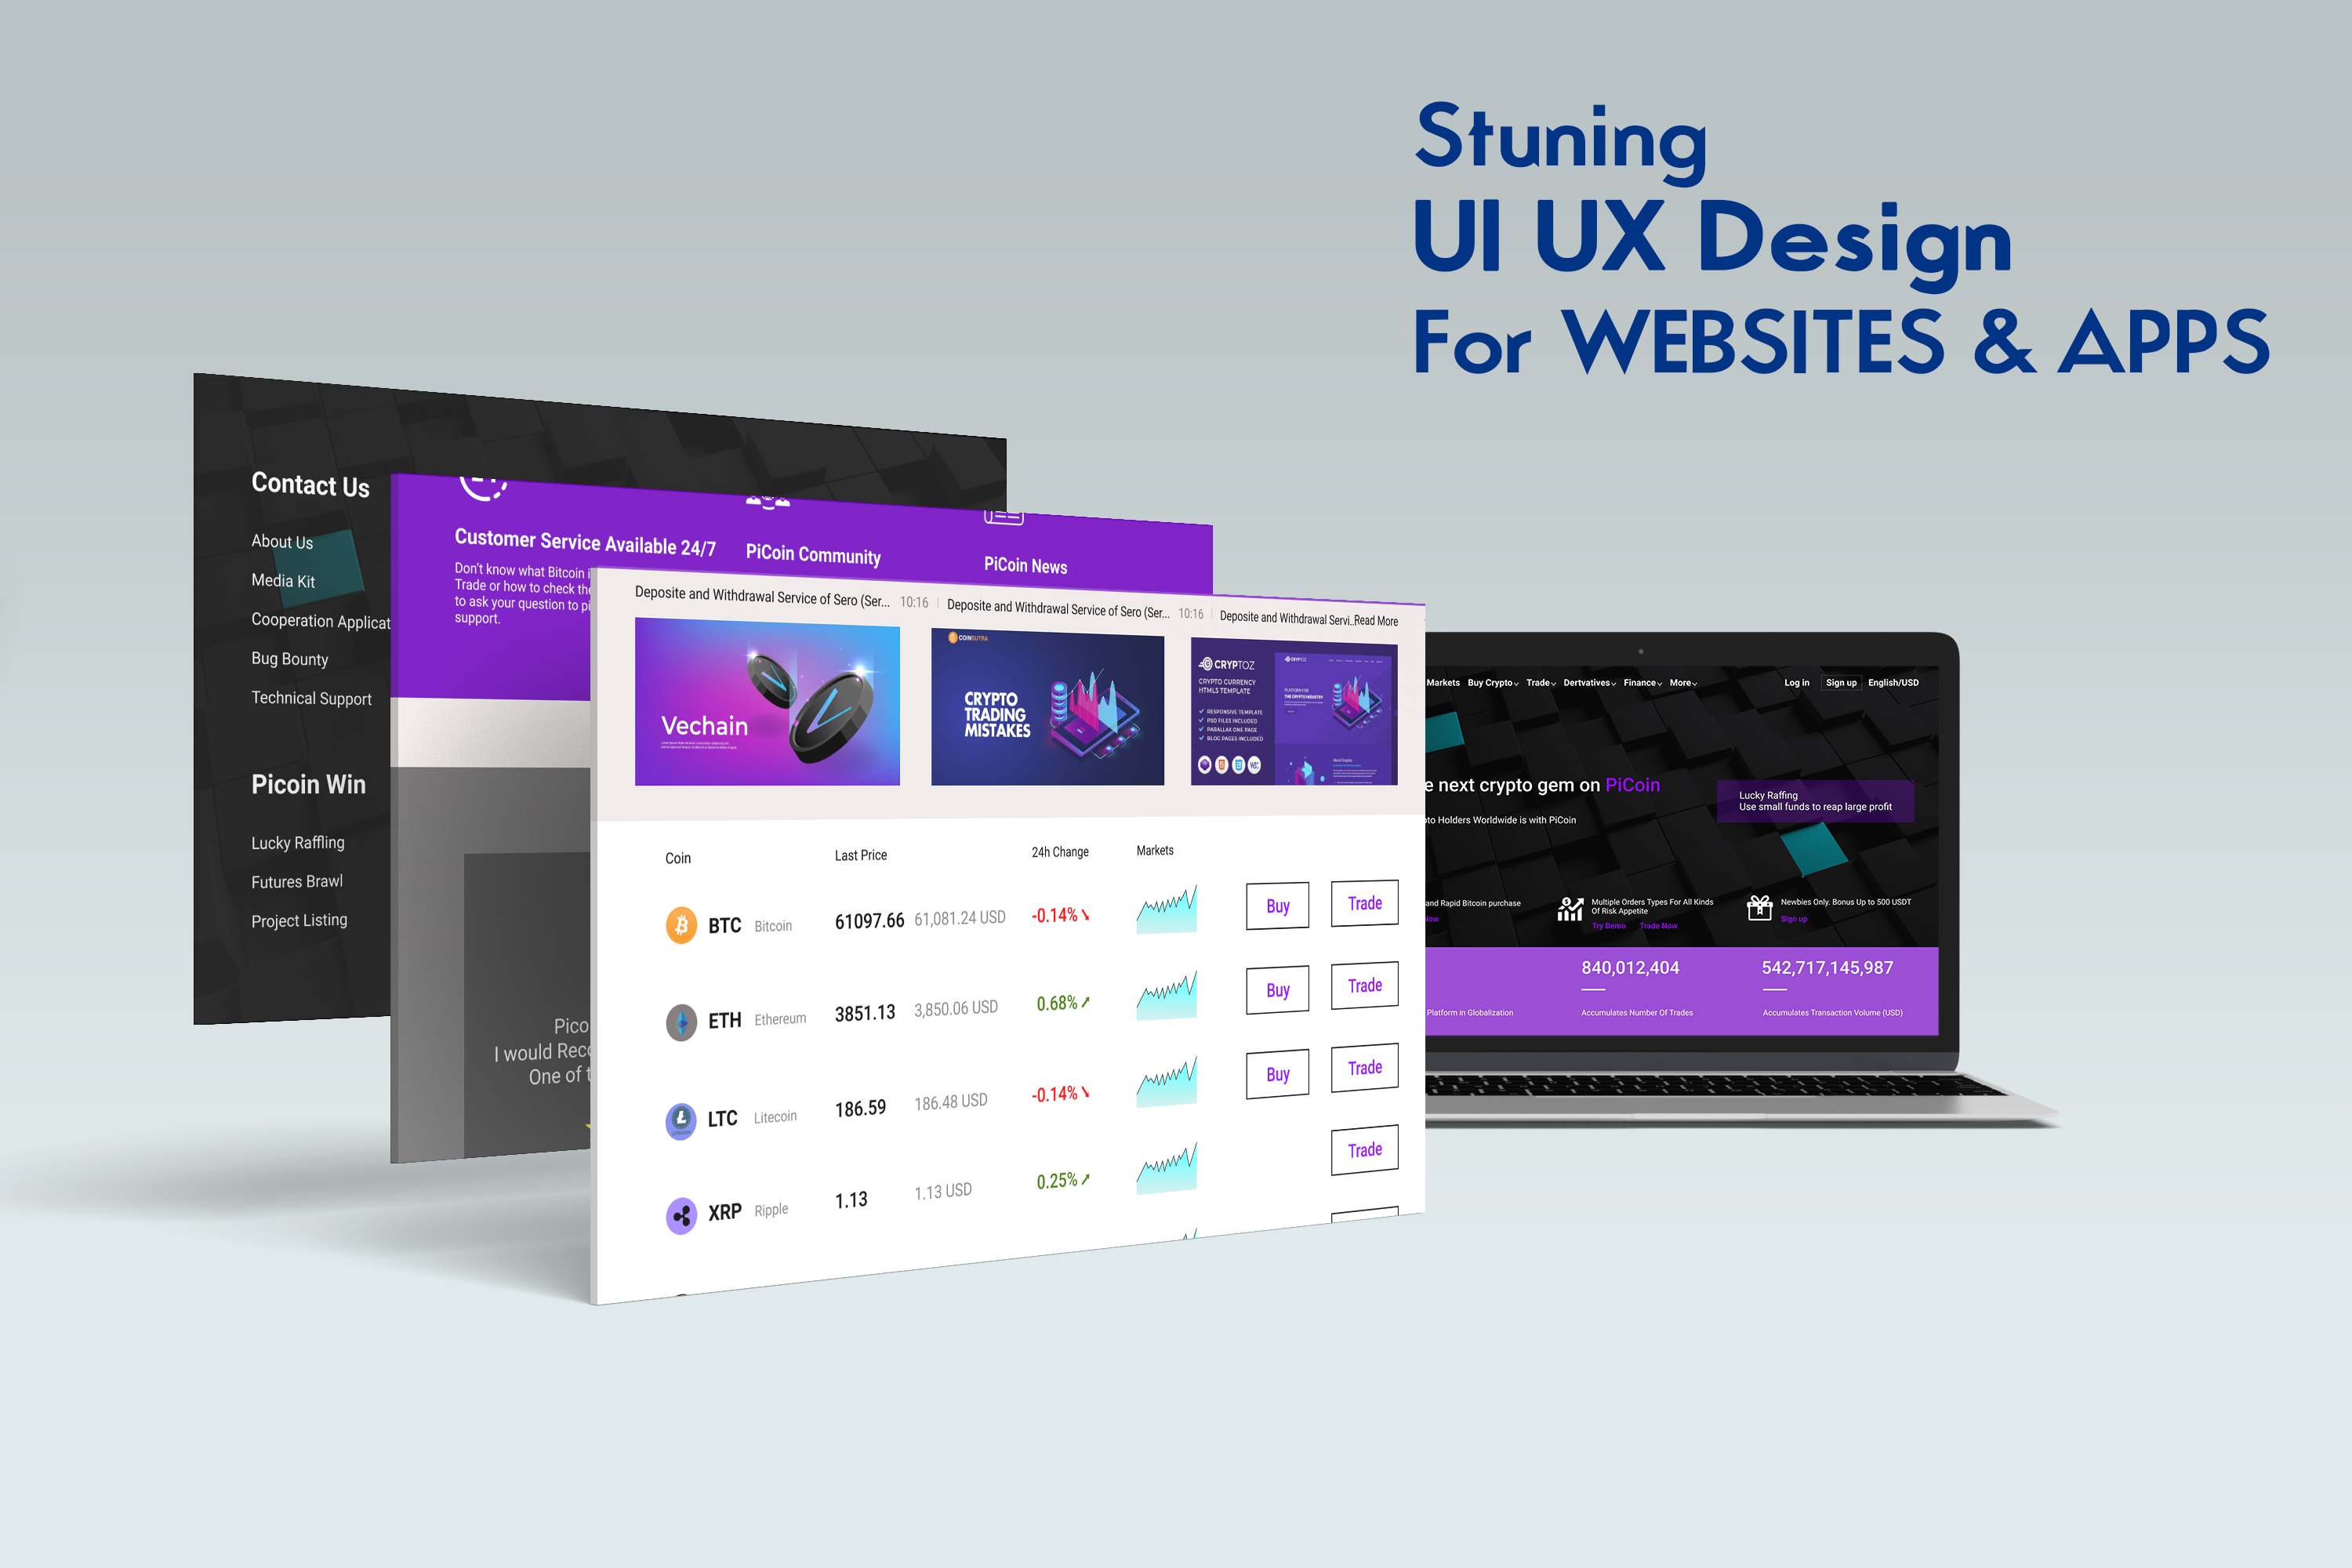 I WILL Design UX UI web screen And Apps using adobe xd or figma